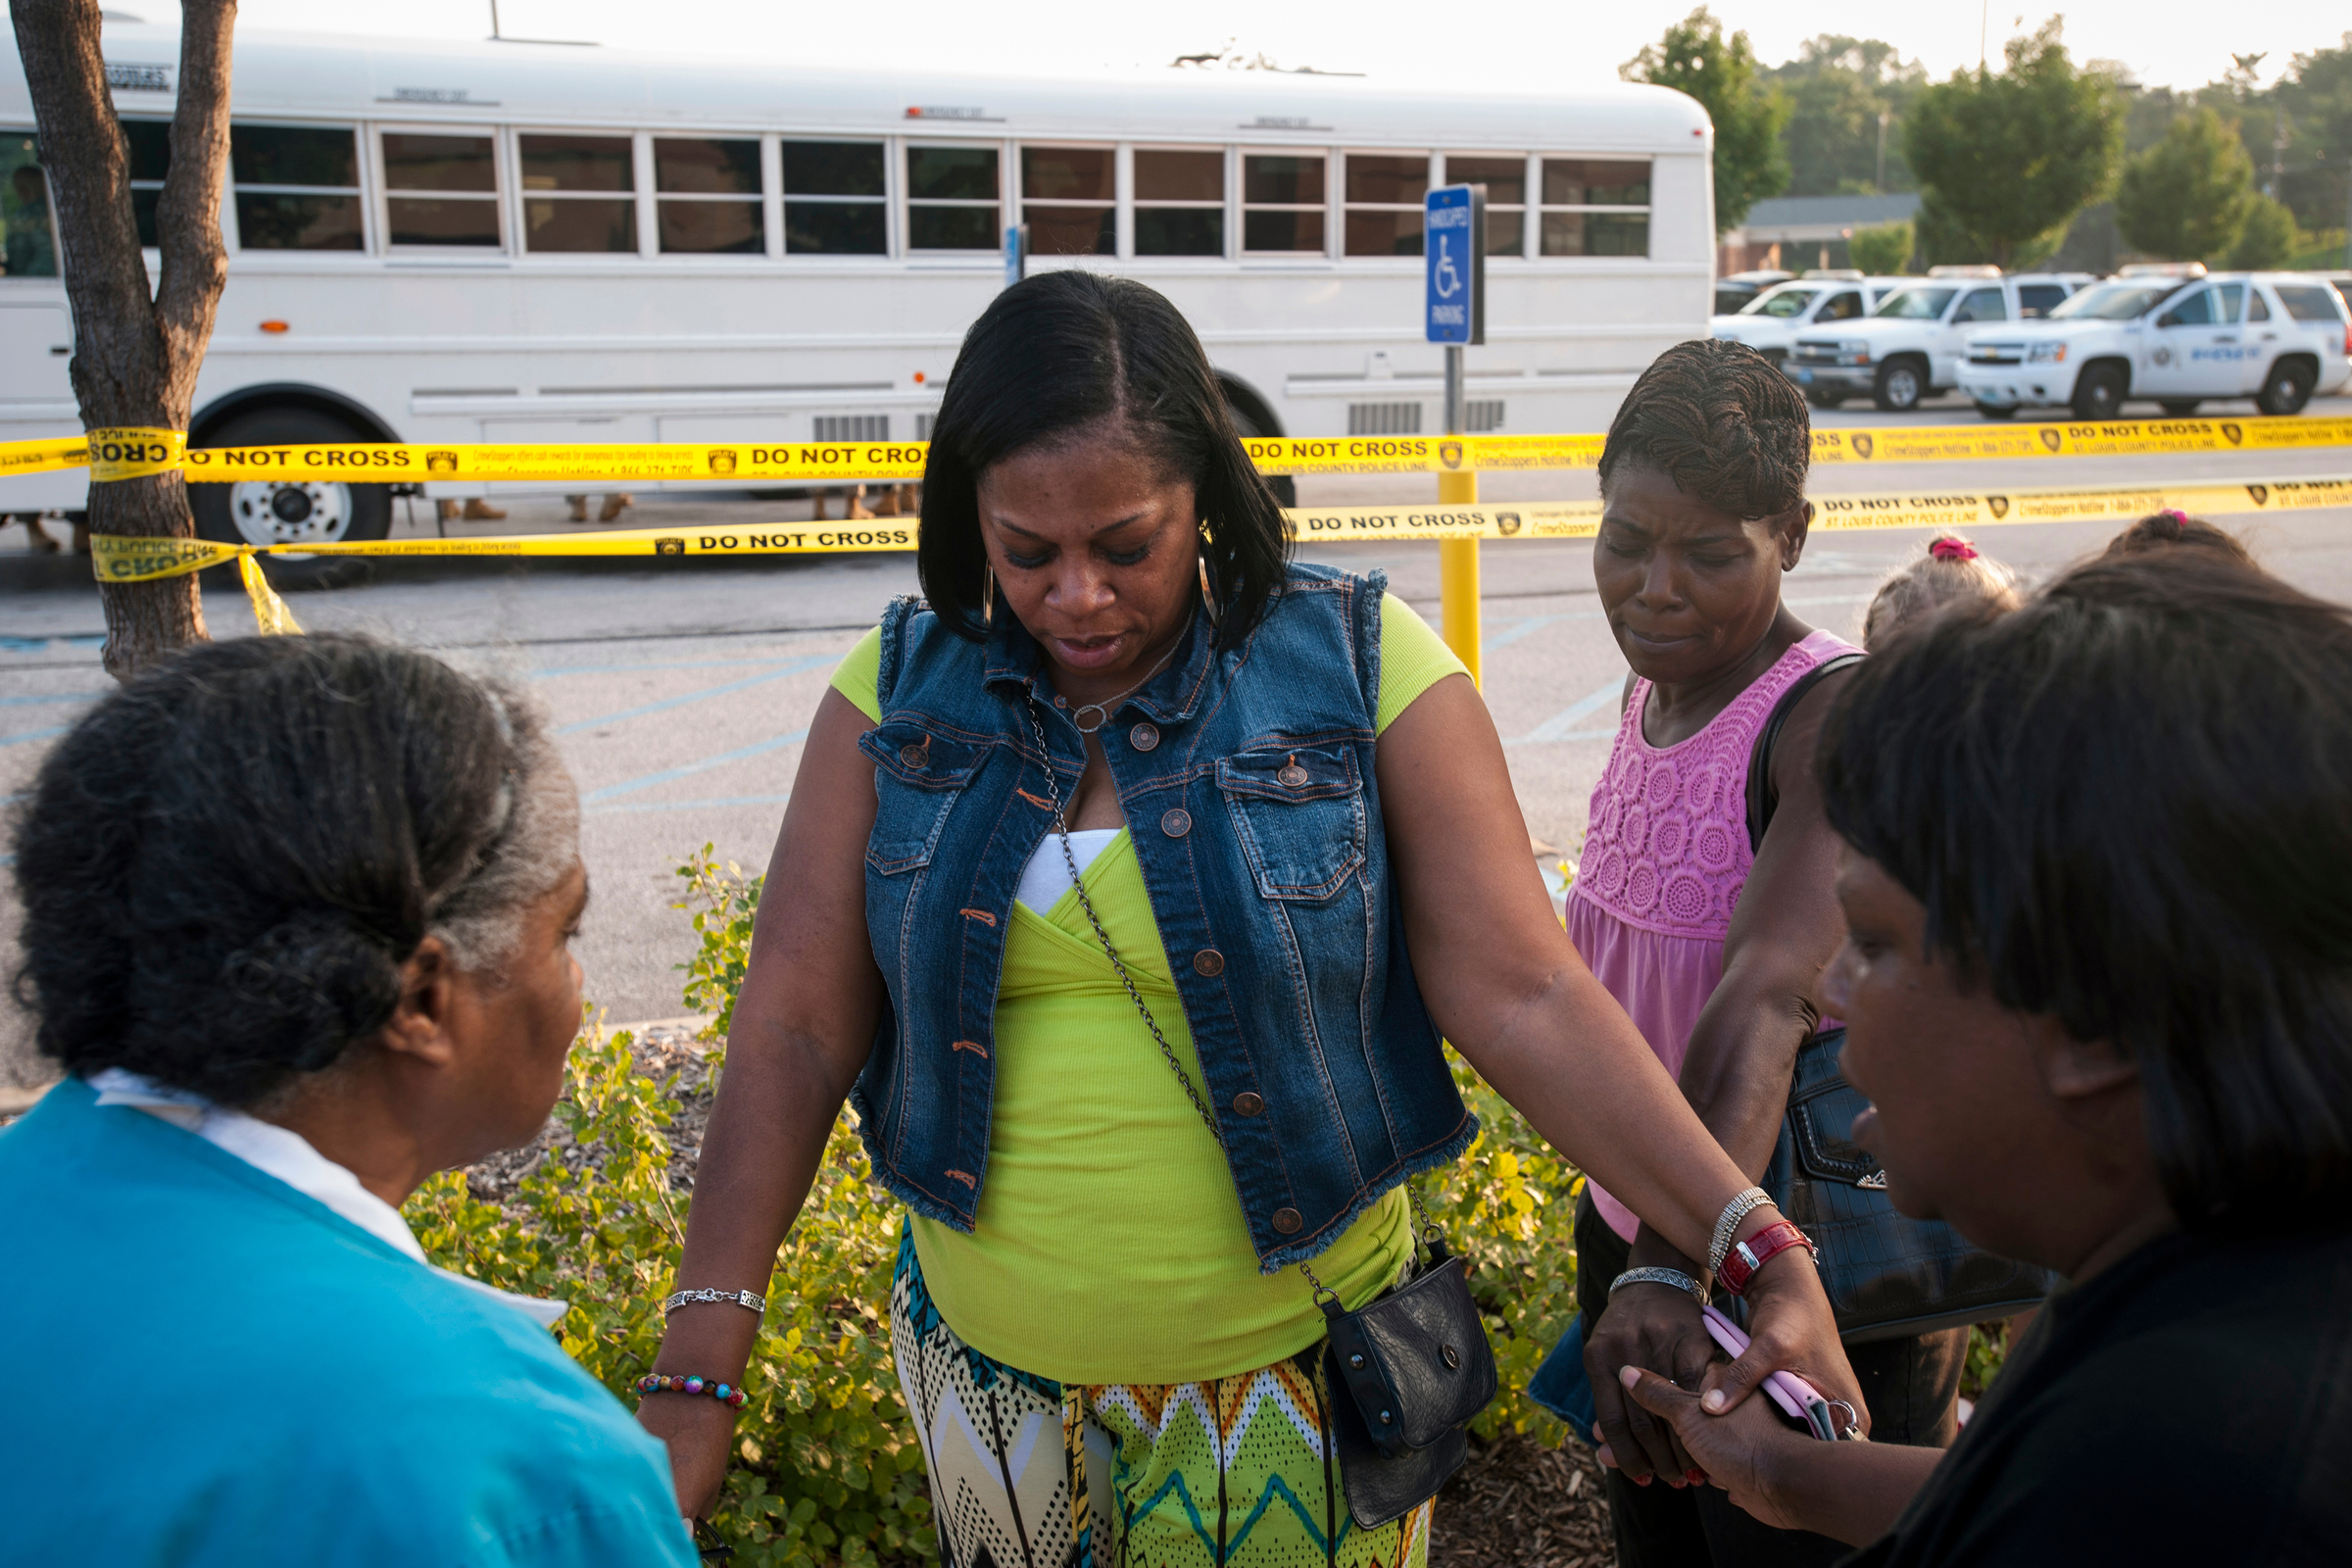 Ferguson residents pray as the National Guard offloads from white busses in response to fears that protestors would march on the police staging location. There was fear that the National Guard themselves would join policing the protests.